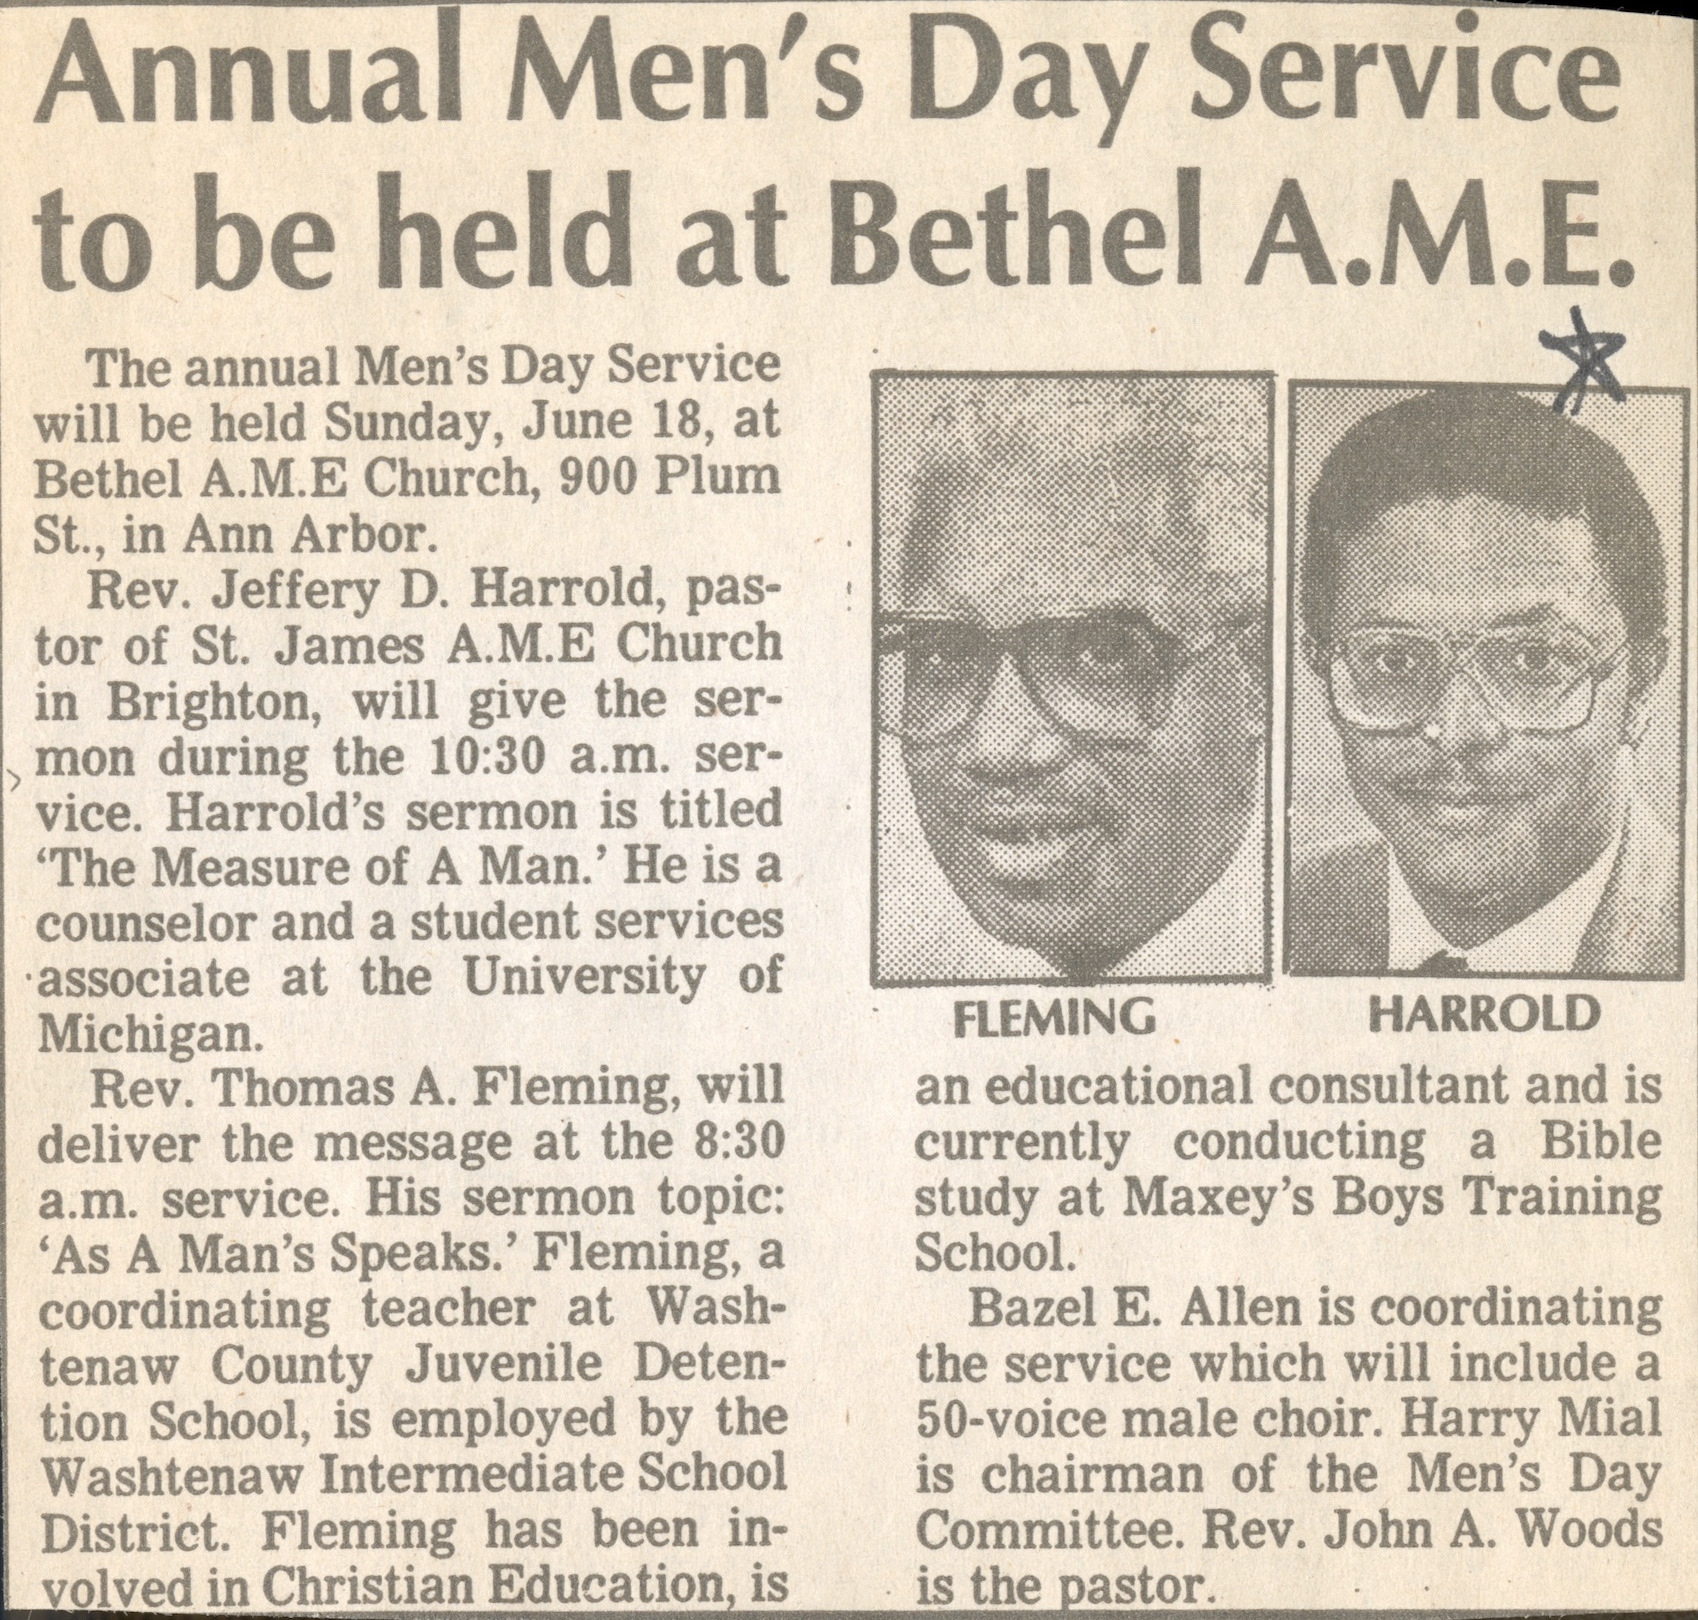 Annual Men's Day Service to be held at Bethel A.M.E. image